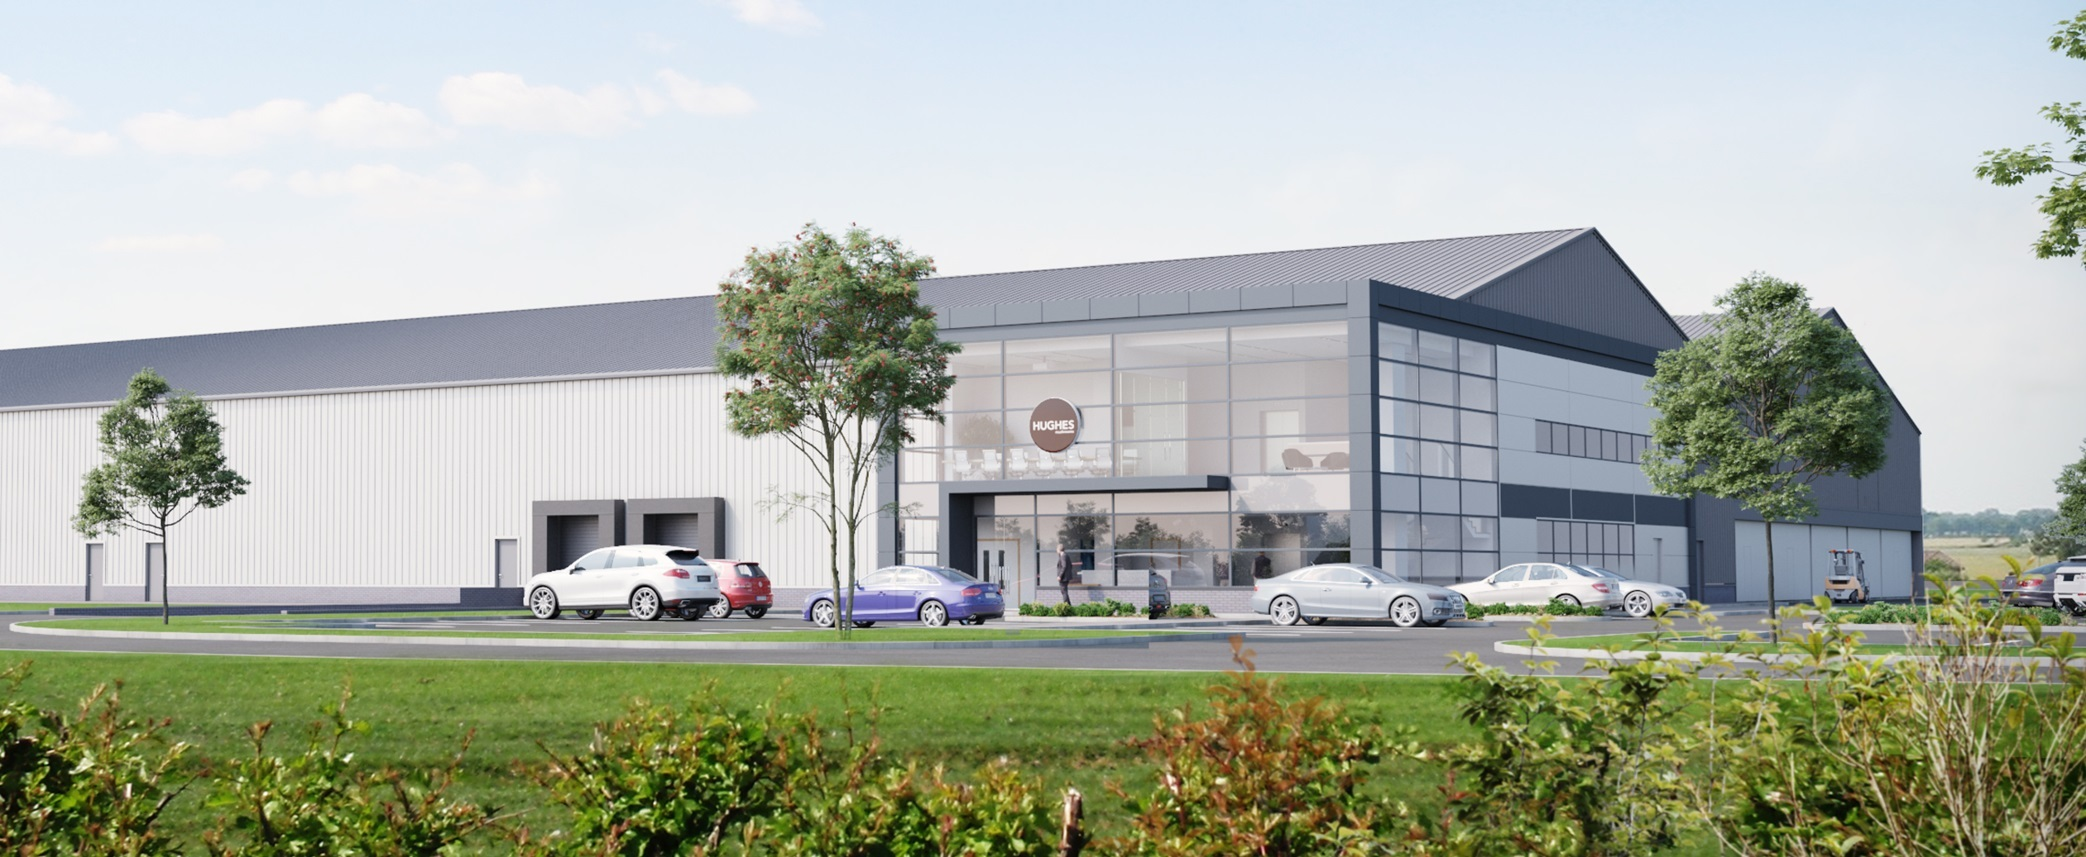 A CGI of the new Hughes facility at Holme on Spalding Moor